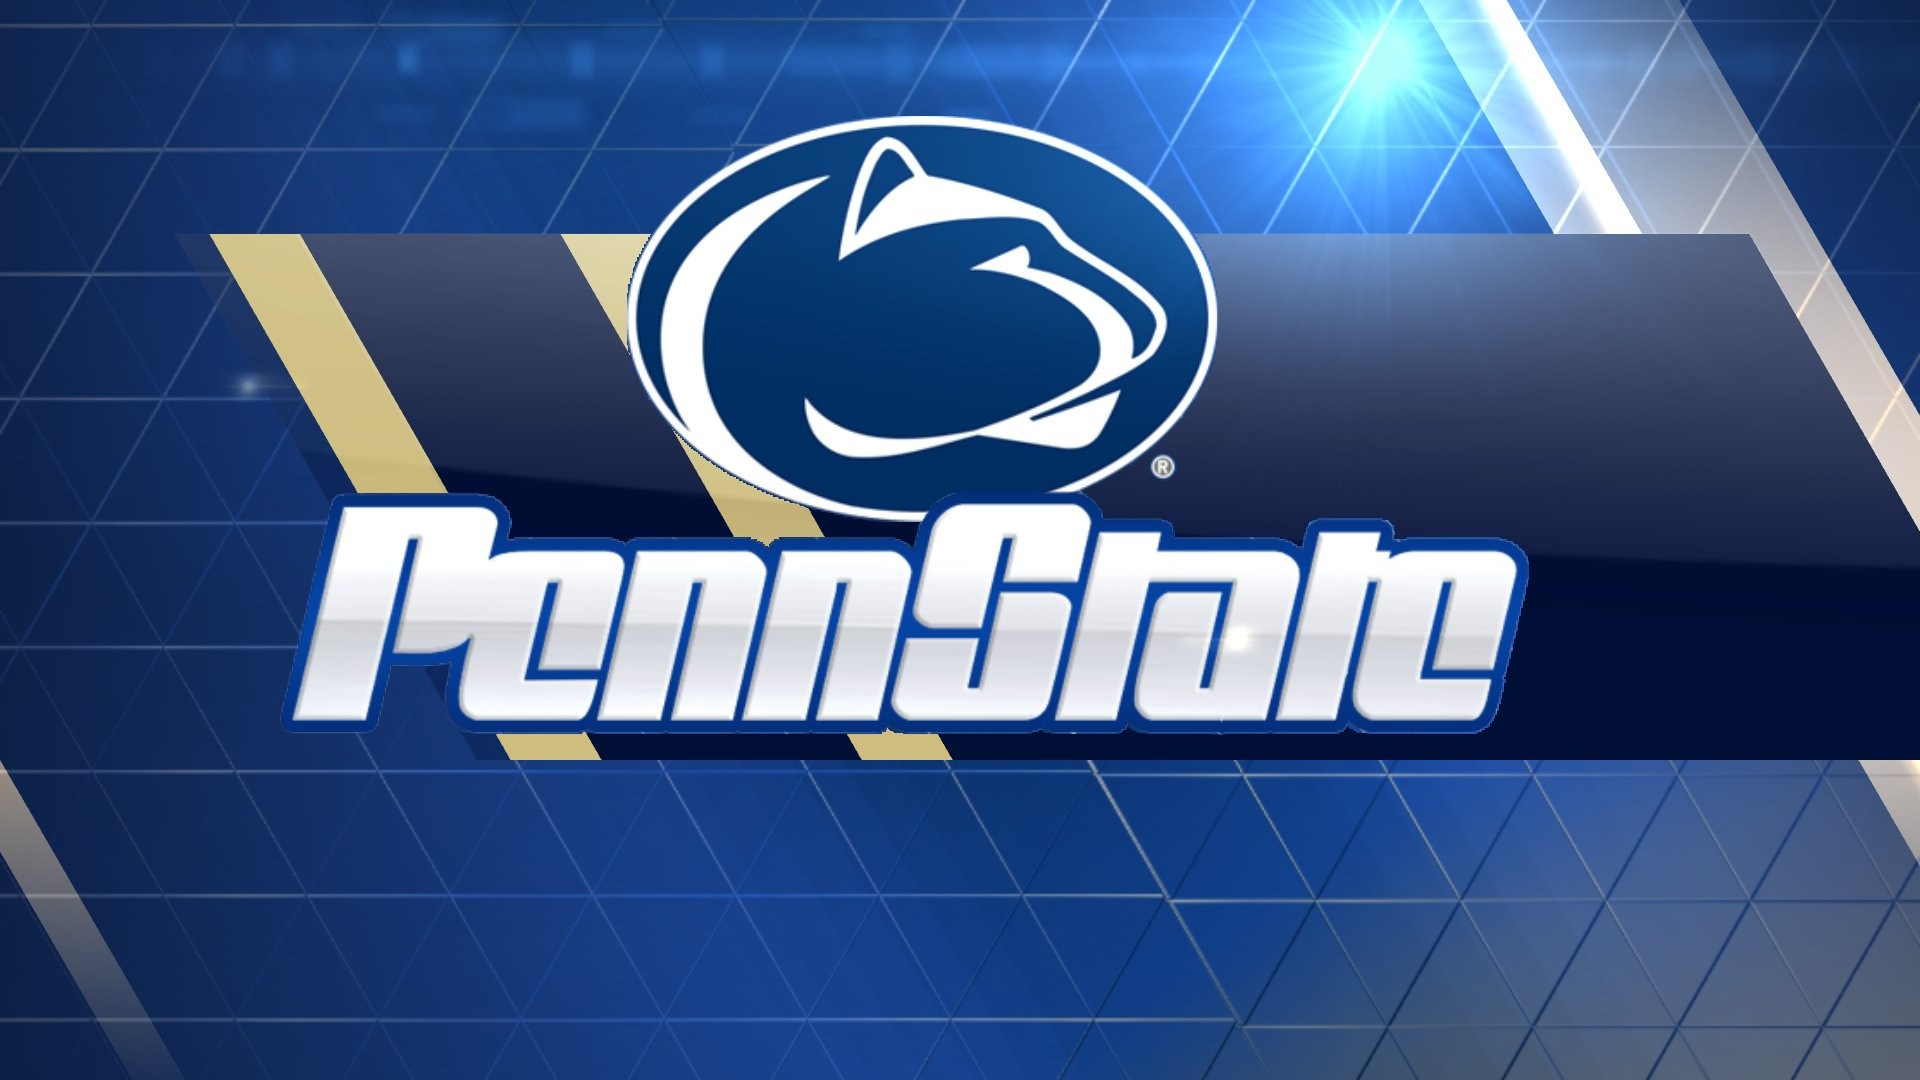 PENN STATE NITTANY LIONS college football wallpaper     595764    WallpaperUP